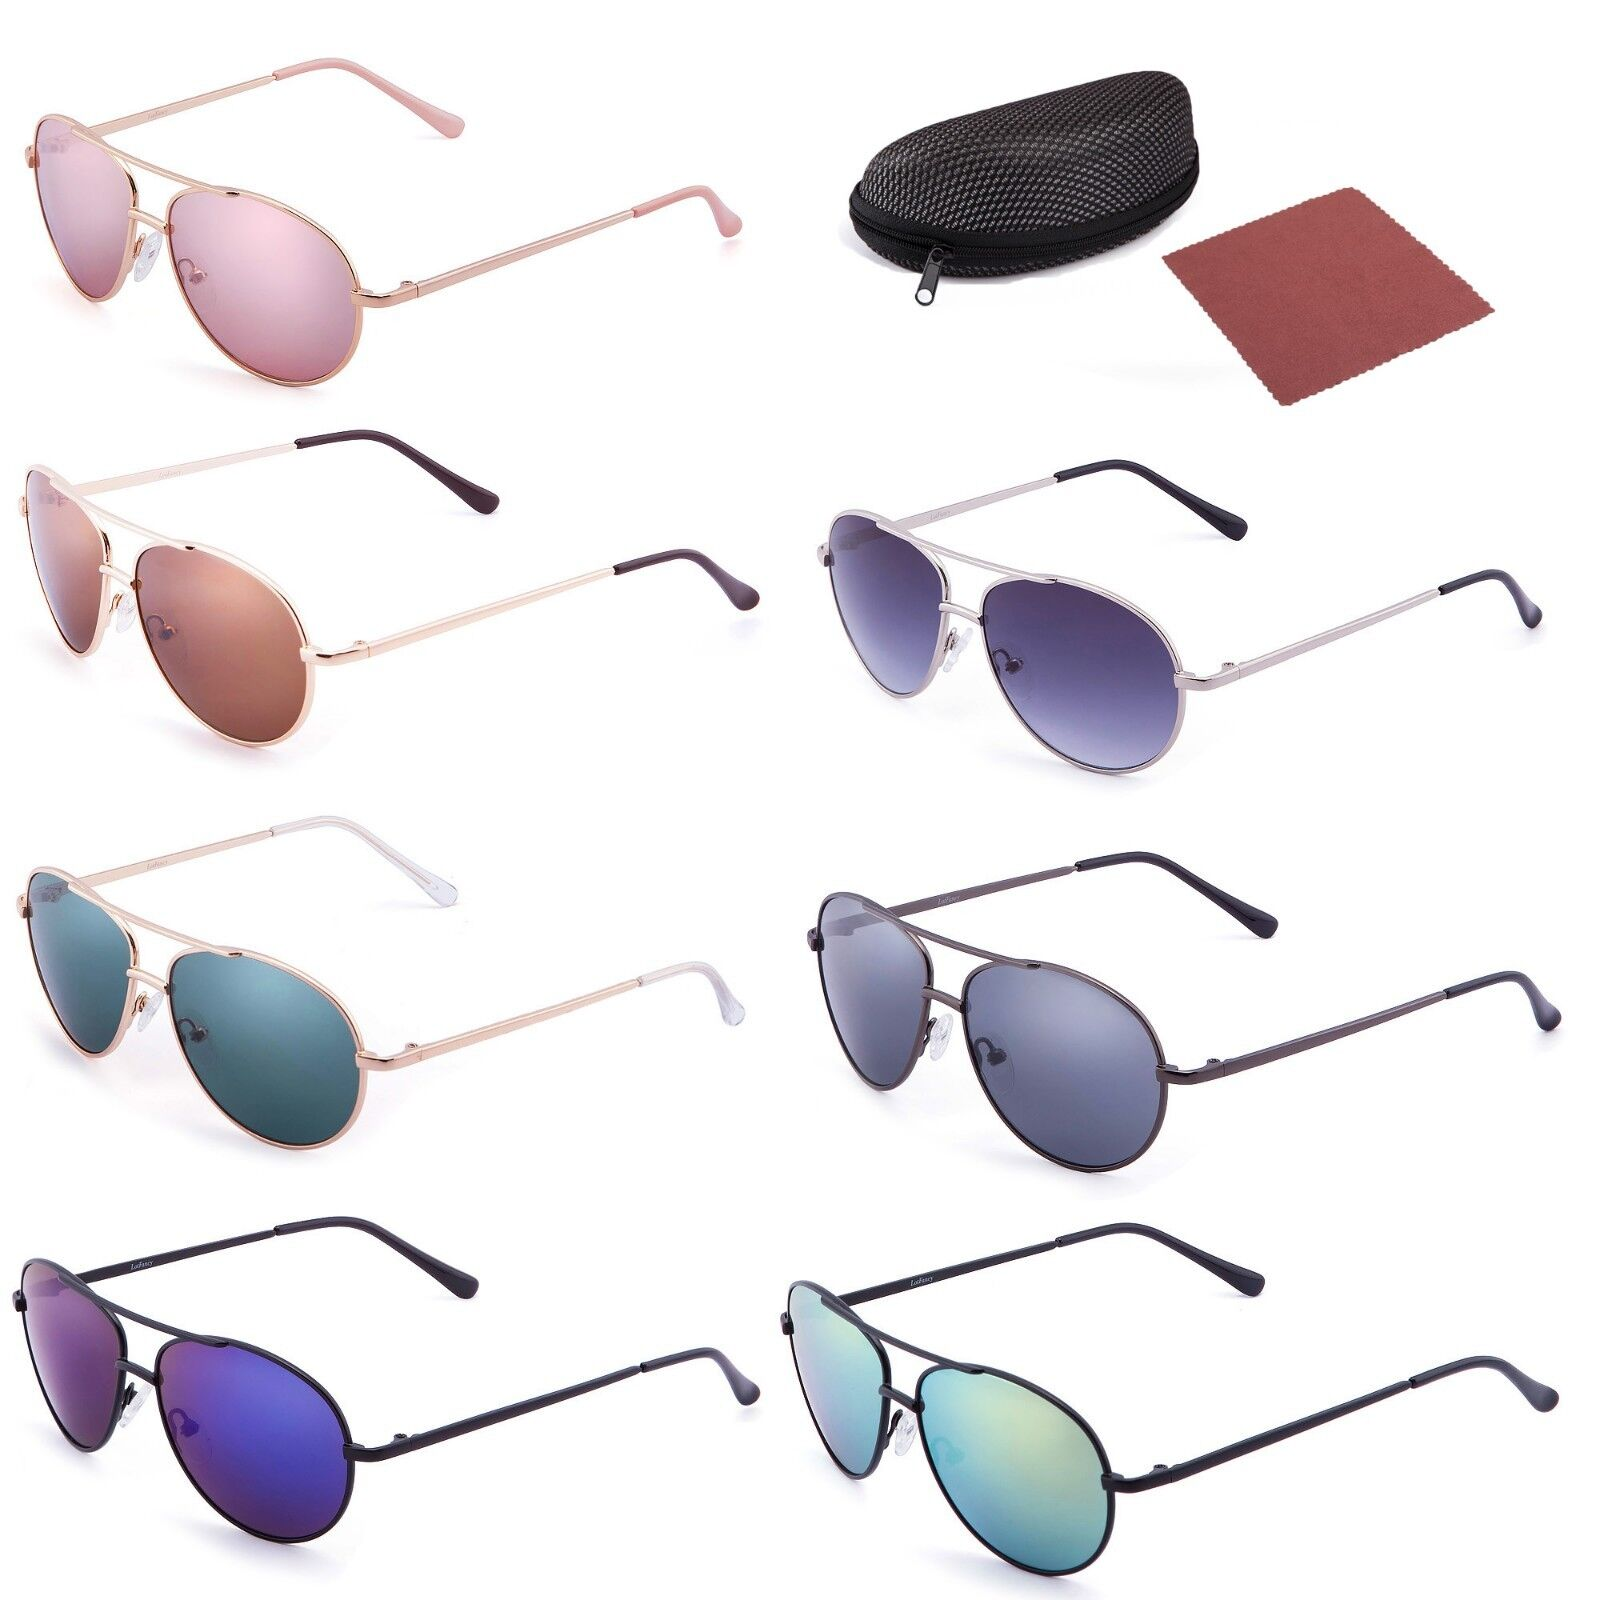 dc305a430f Vintage Aviator Sunglasses For Boys Girls Kids Child Toddler Baby Driving  Case